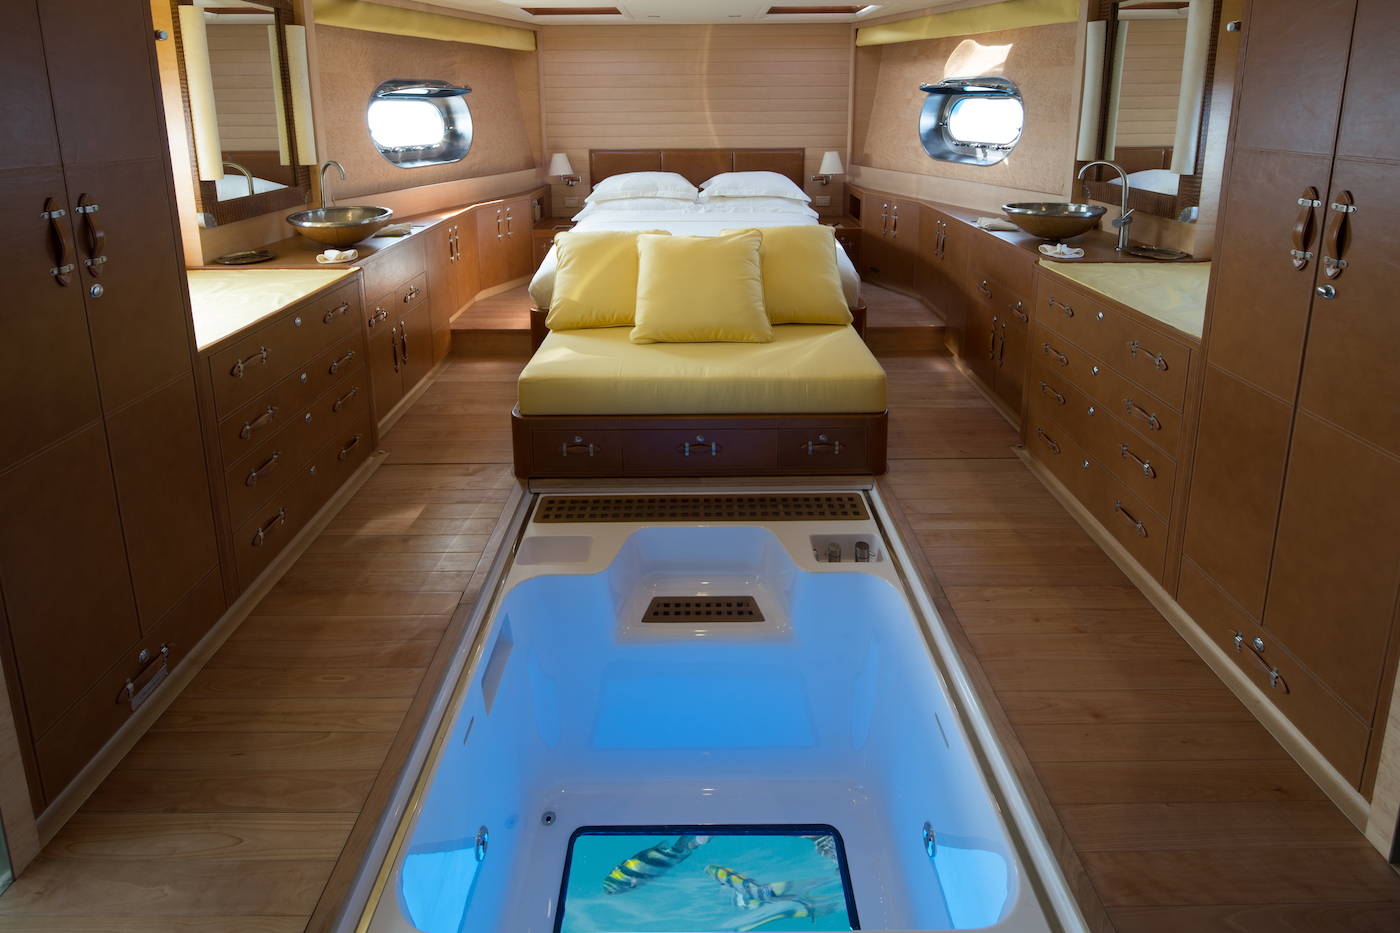 SIA Master Cabin With Glass Bottom Jacuzzi